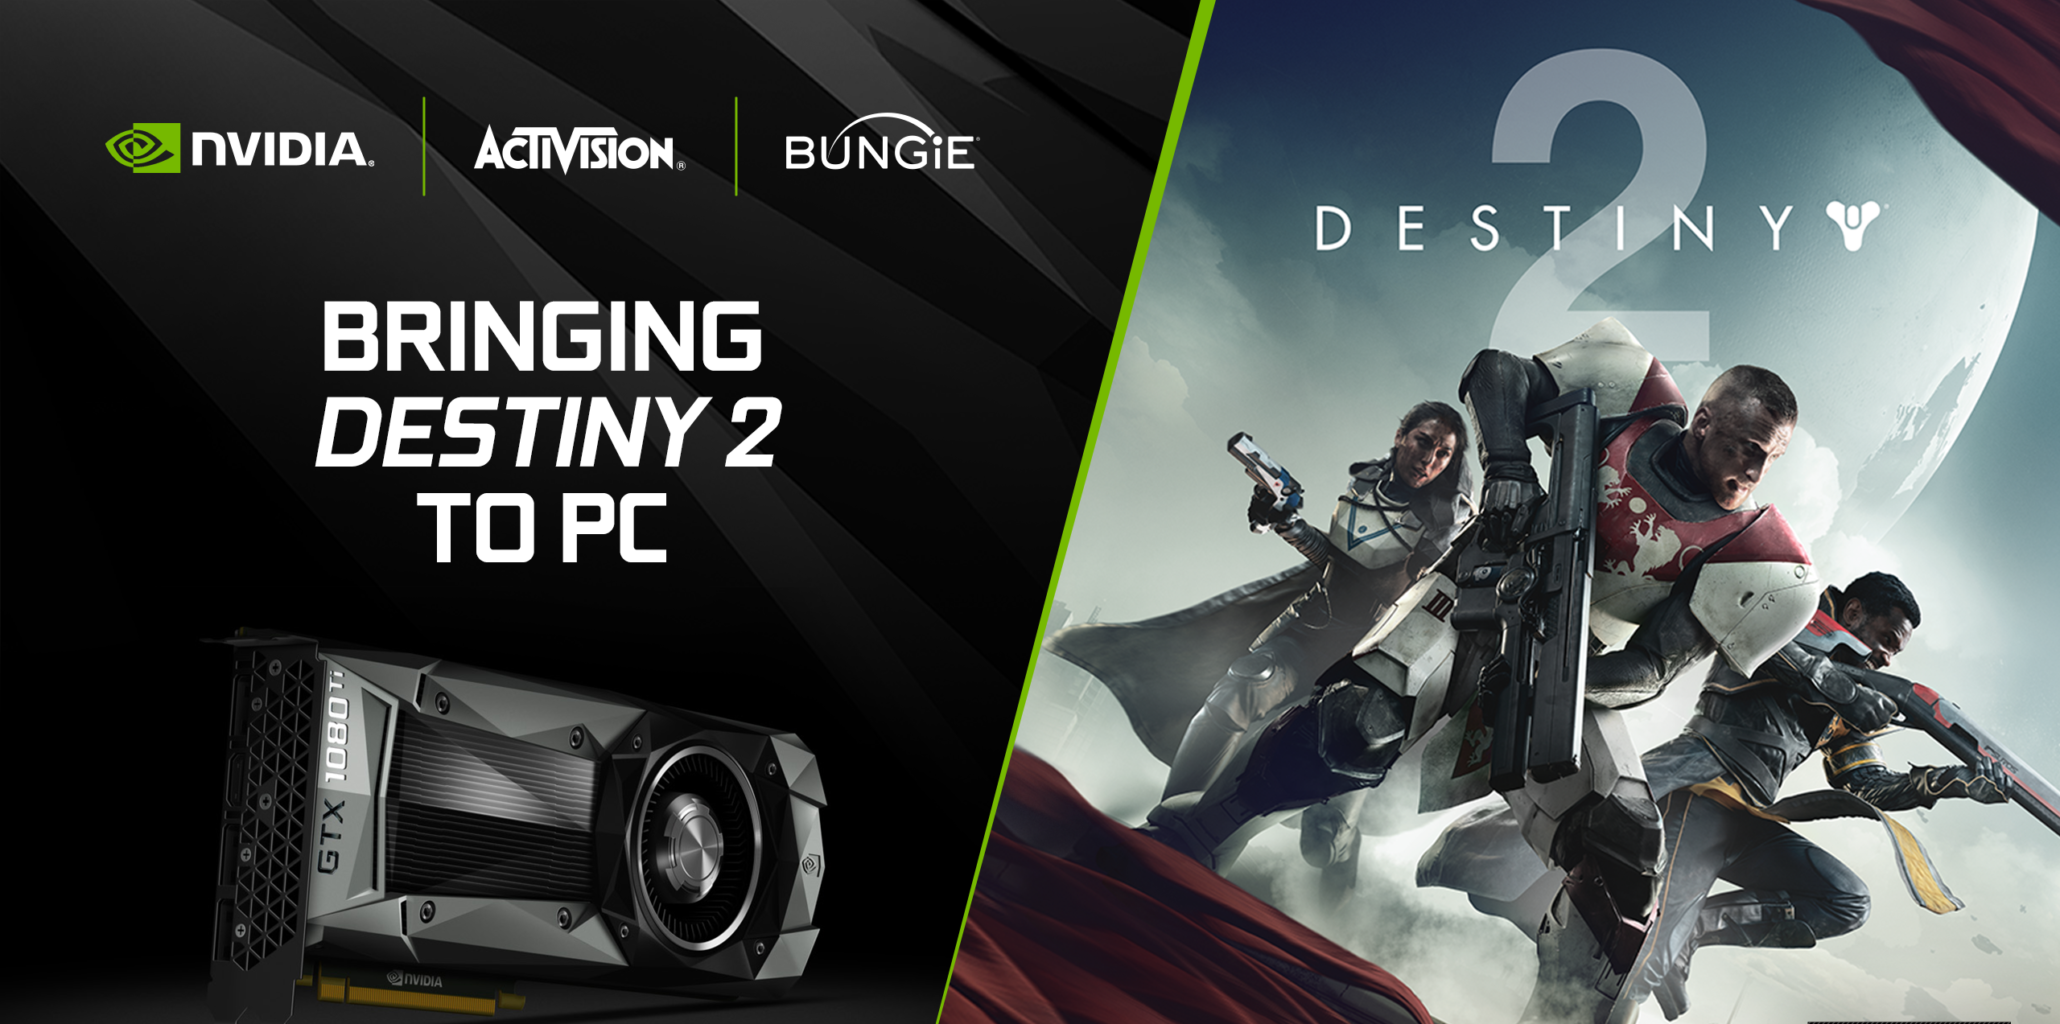 GeForce Driver 385 41 Out Now - Game Ready for Destiny 2